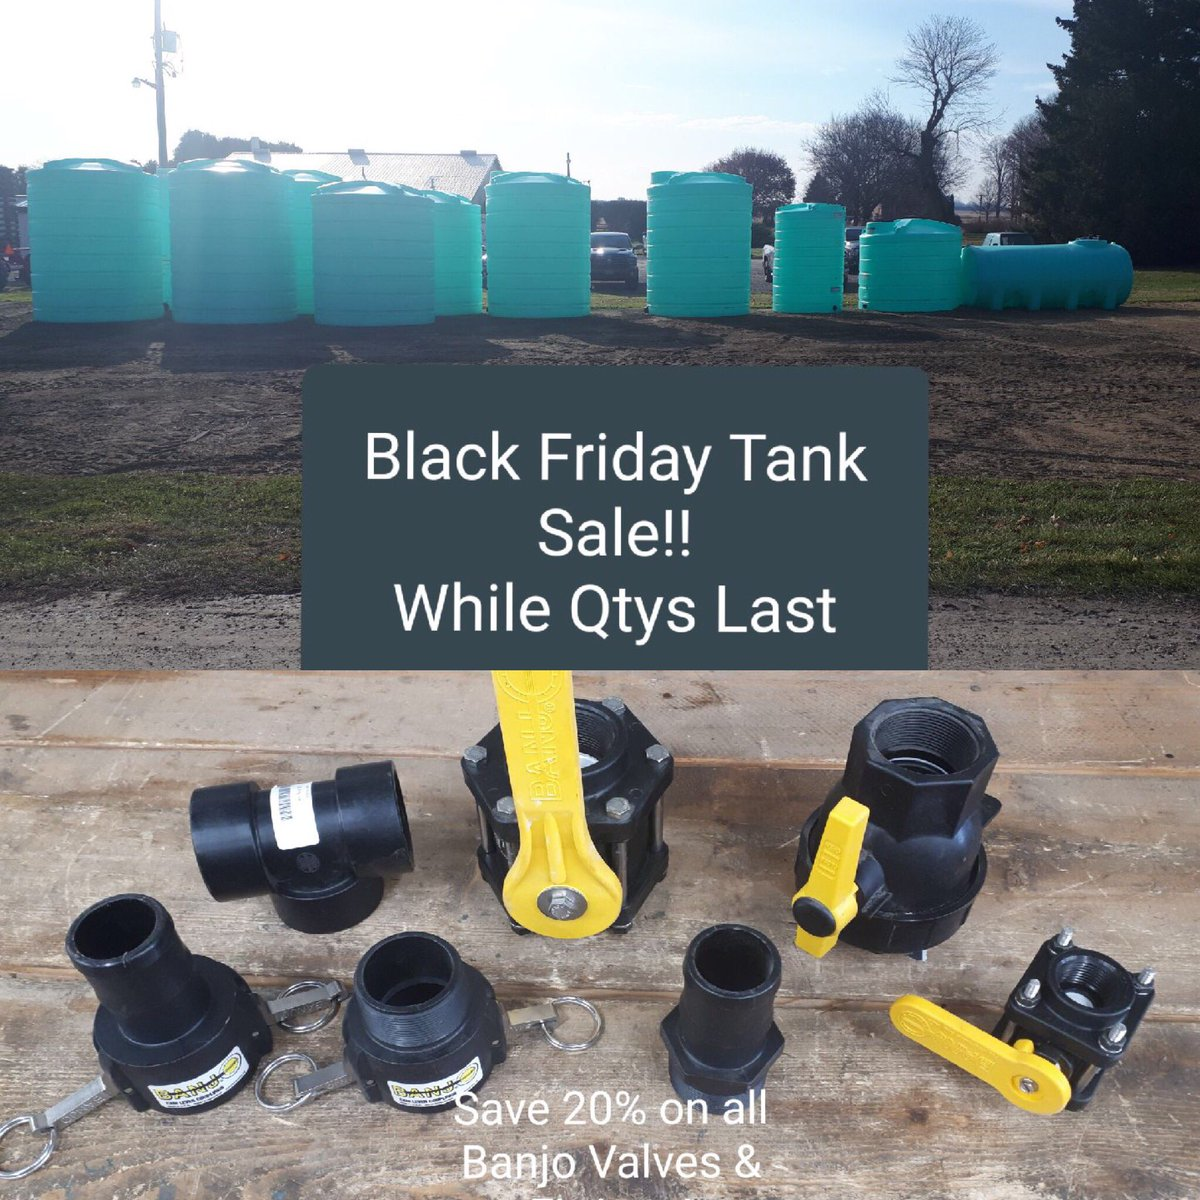 Sale Alert! Tanks and fitting available @kearney_parts call for sizes, prices, availability and delivery options #BlackFridaySale #storage